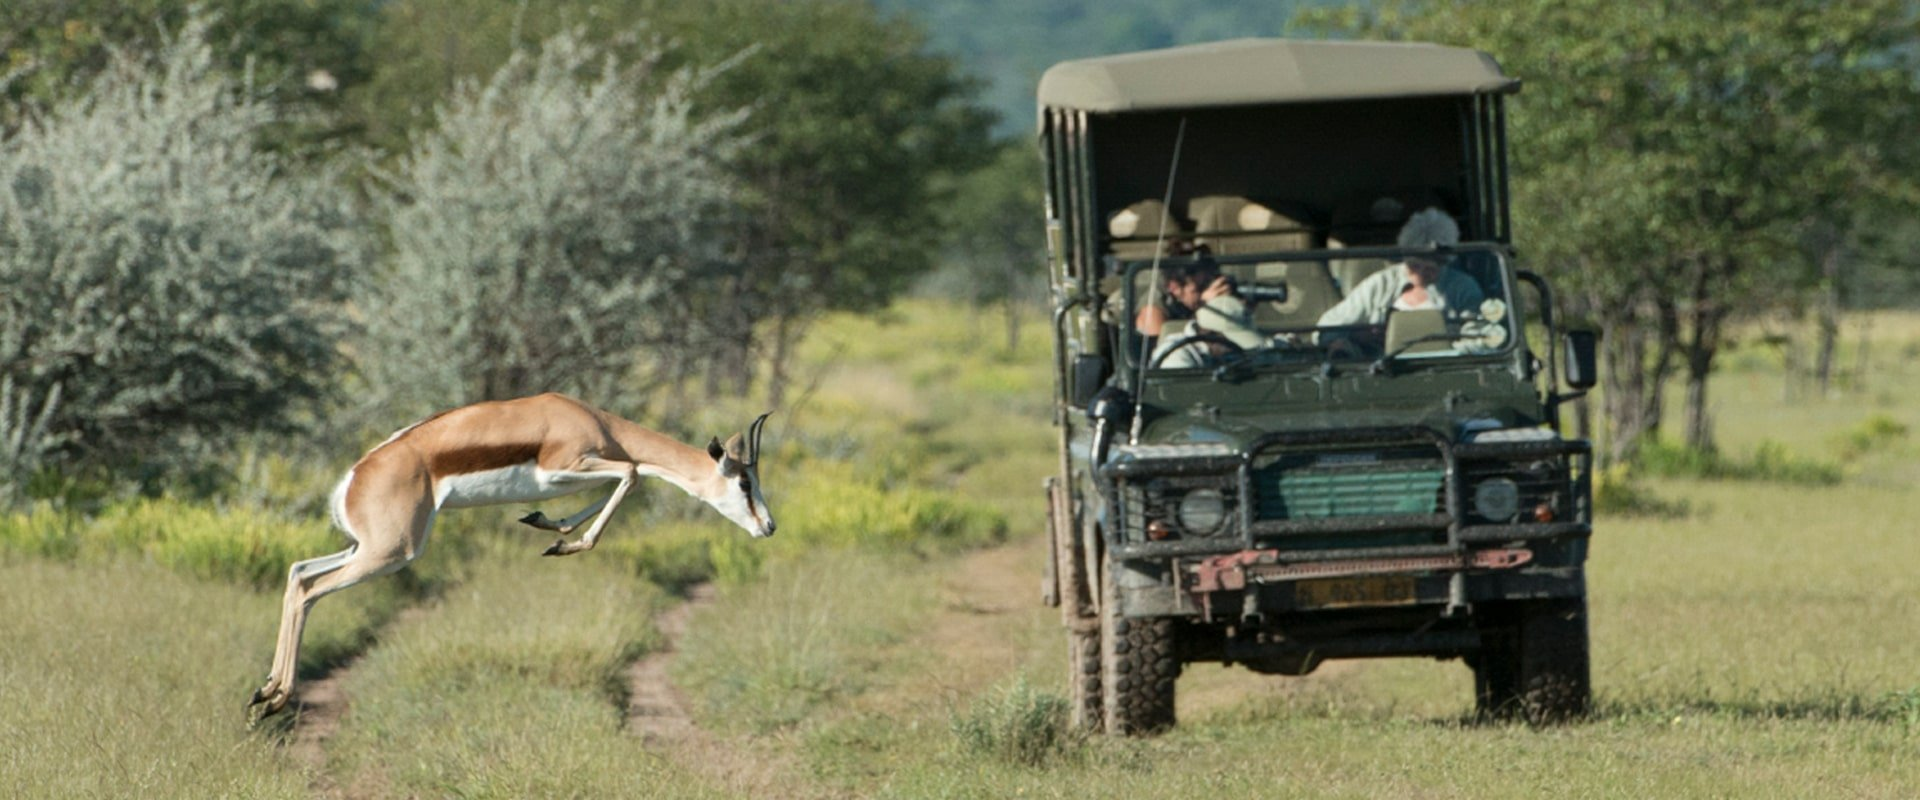 Go on a game drive of the reserve